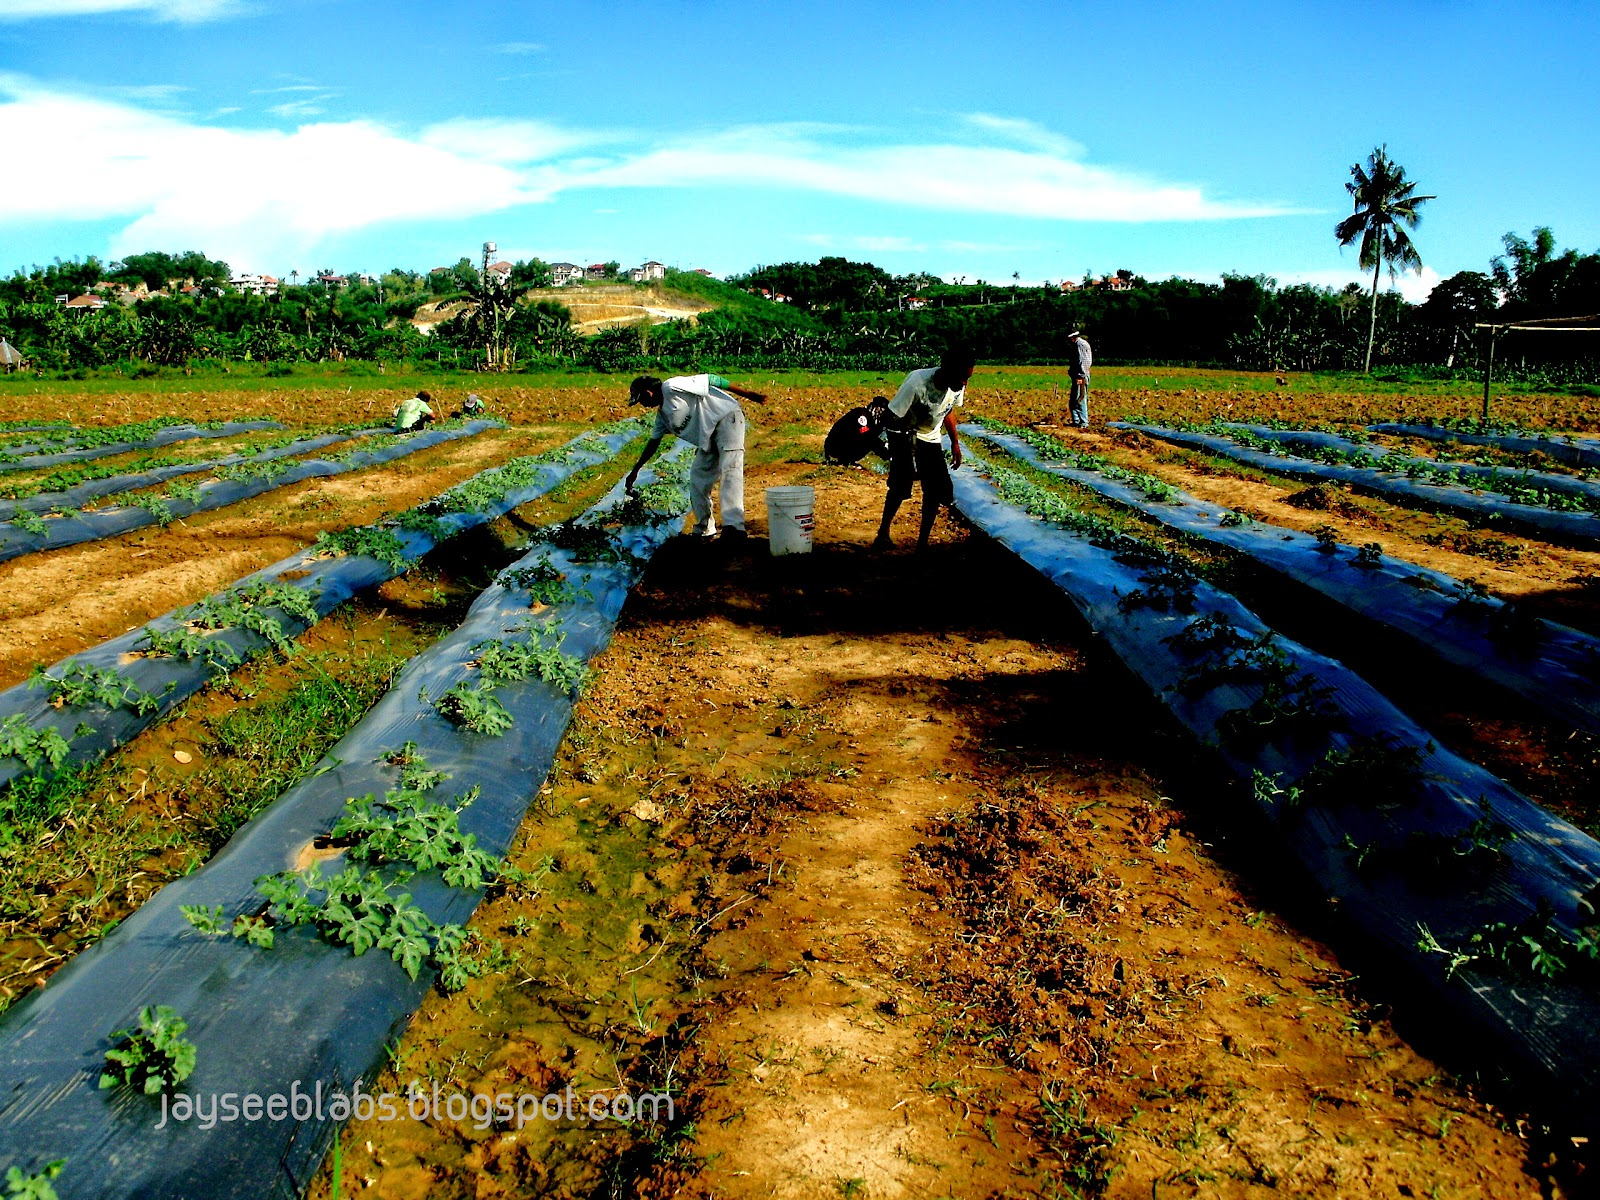 Consolacion Cebu Philippines.  You will only appreciate what our hero farmers are doing once you really get in under the sun, work long hours, work hungry and thirsty and work without complaining.